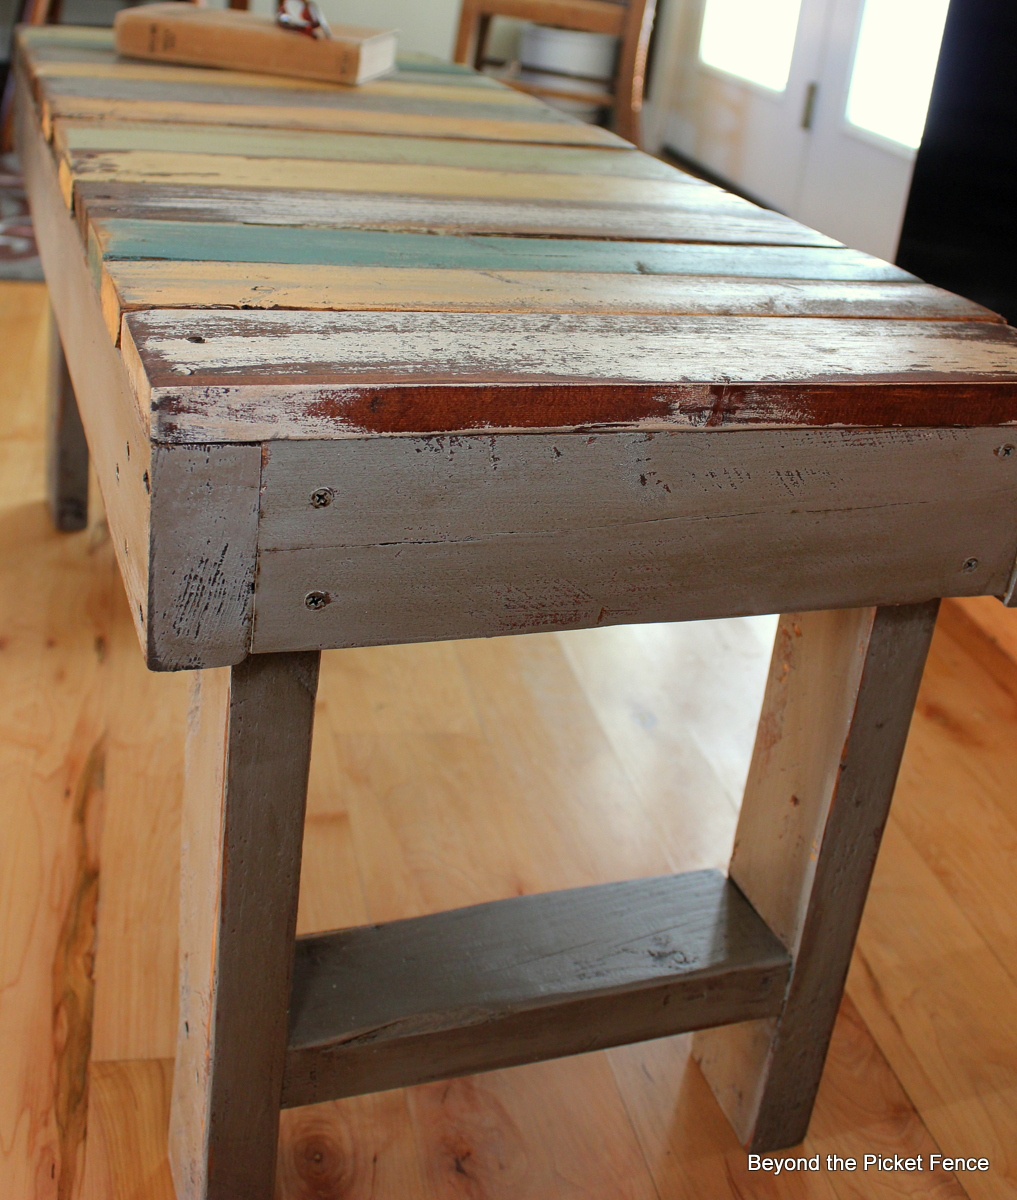 Pallet Bench Ideas: Beyond The Picket Fence: Pallet Bench Tutorial